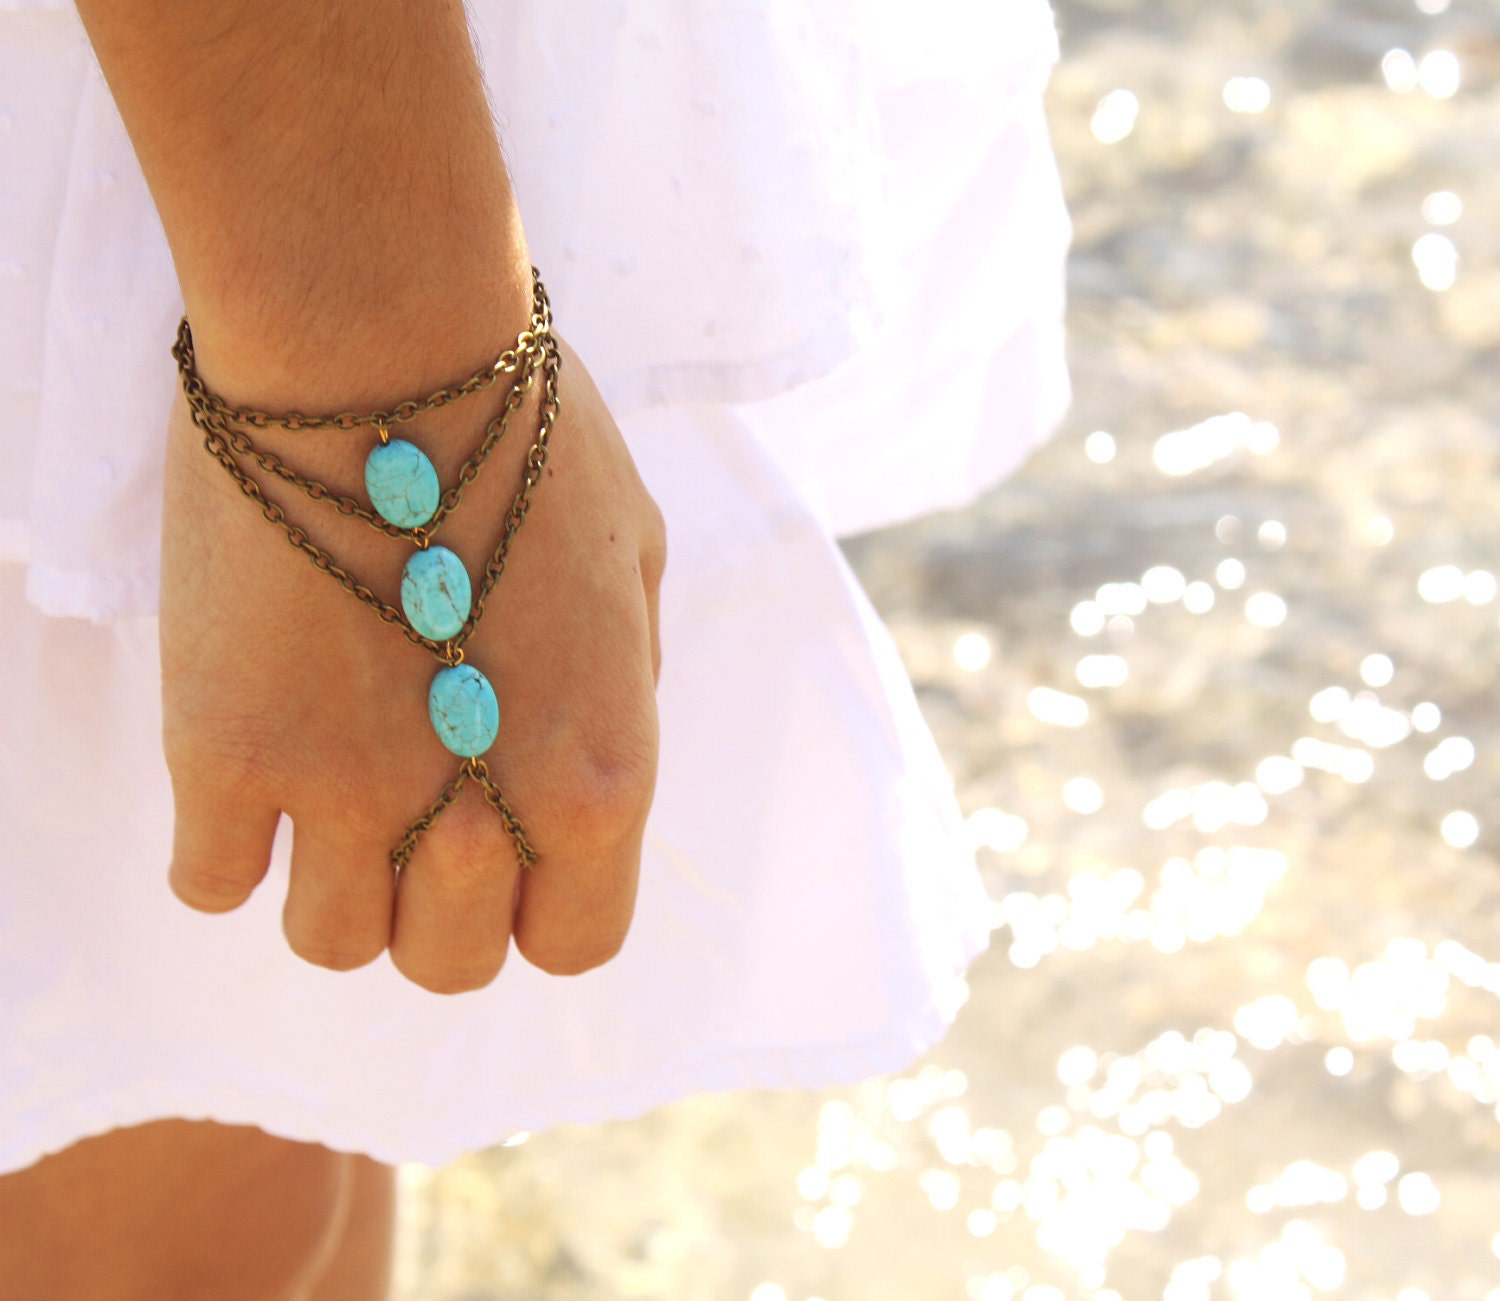 Slave Bracelet Hipster Bronze Chain Bohemian Three Turquoise Beads Triangle Hand Jewelry Piece